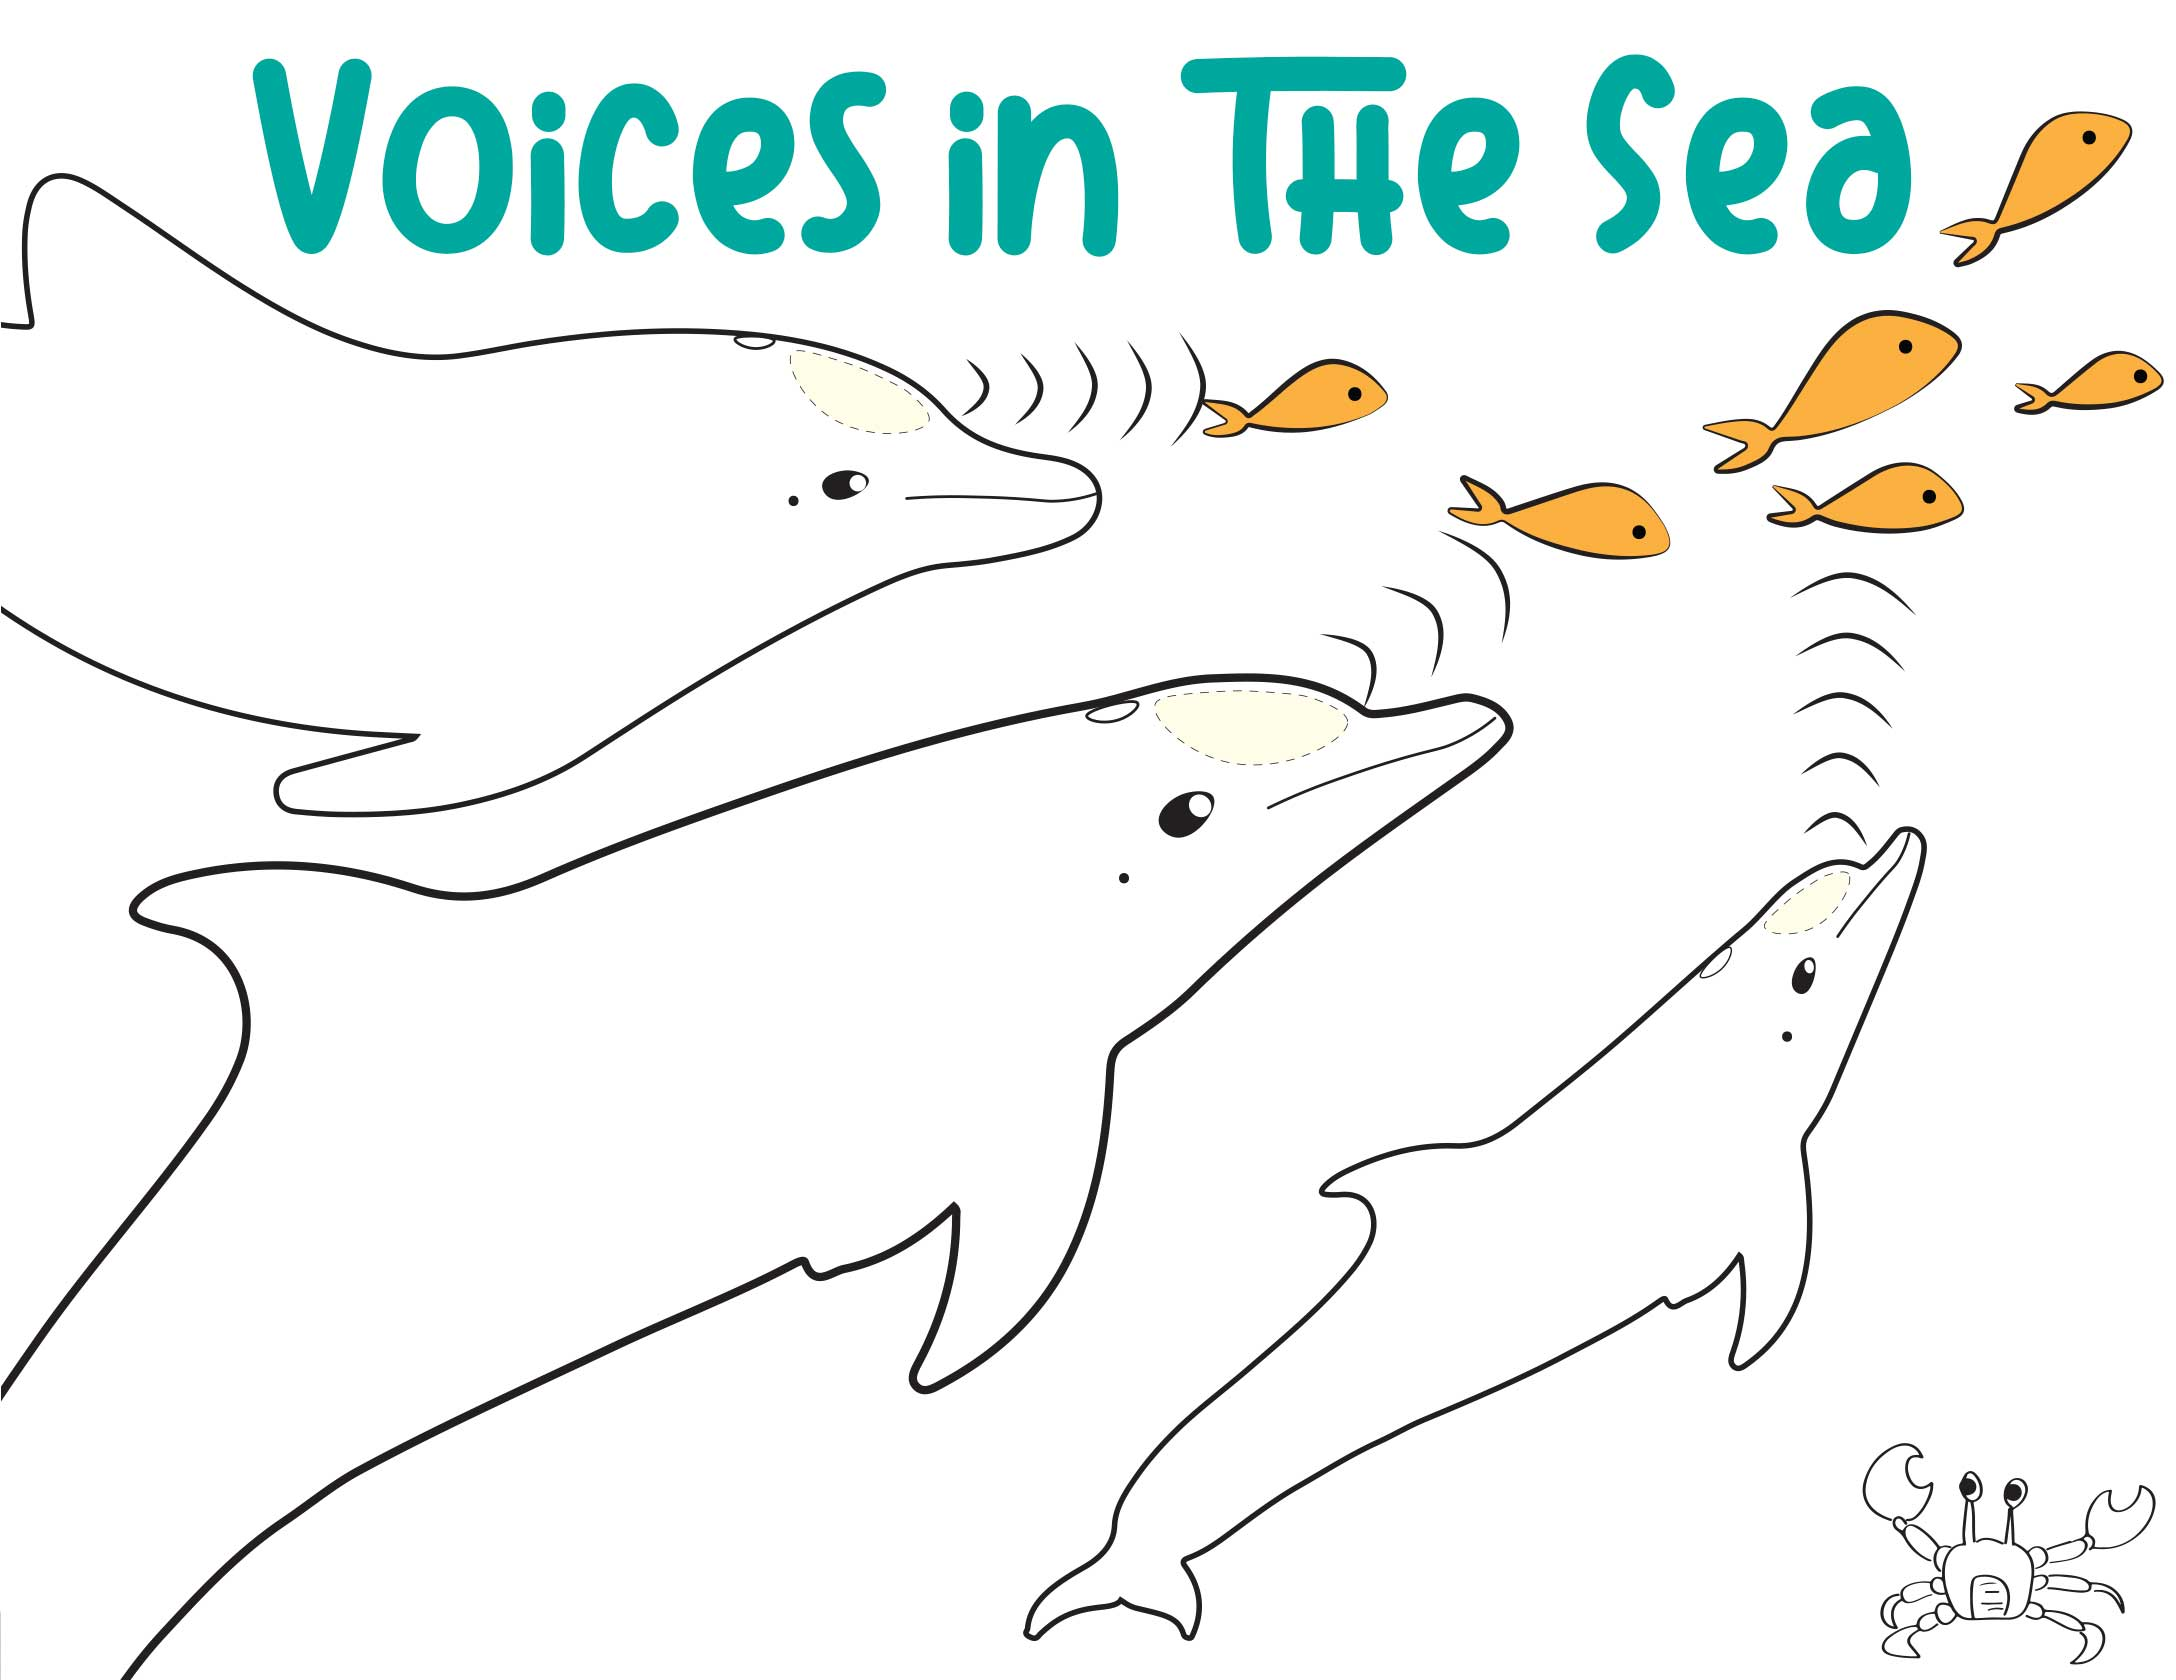 VoicesInTheSea-ColoringSheet